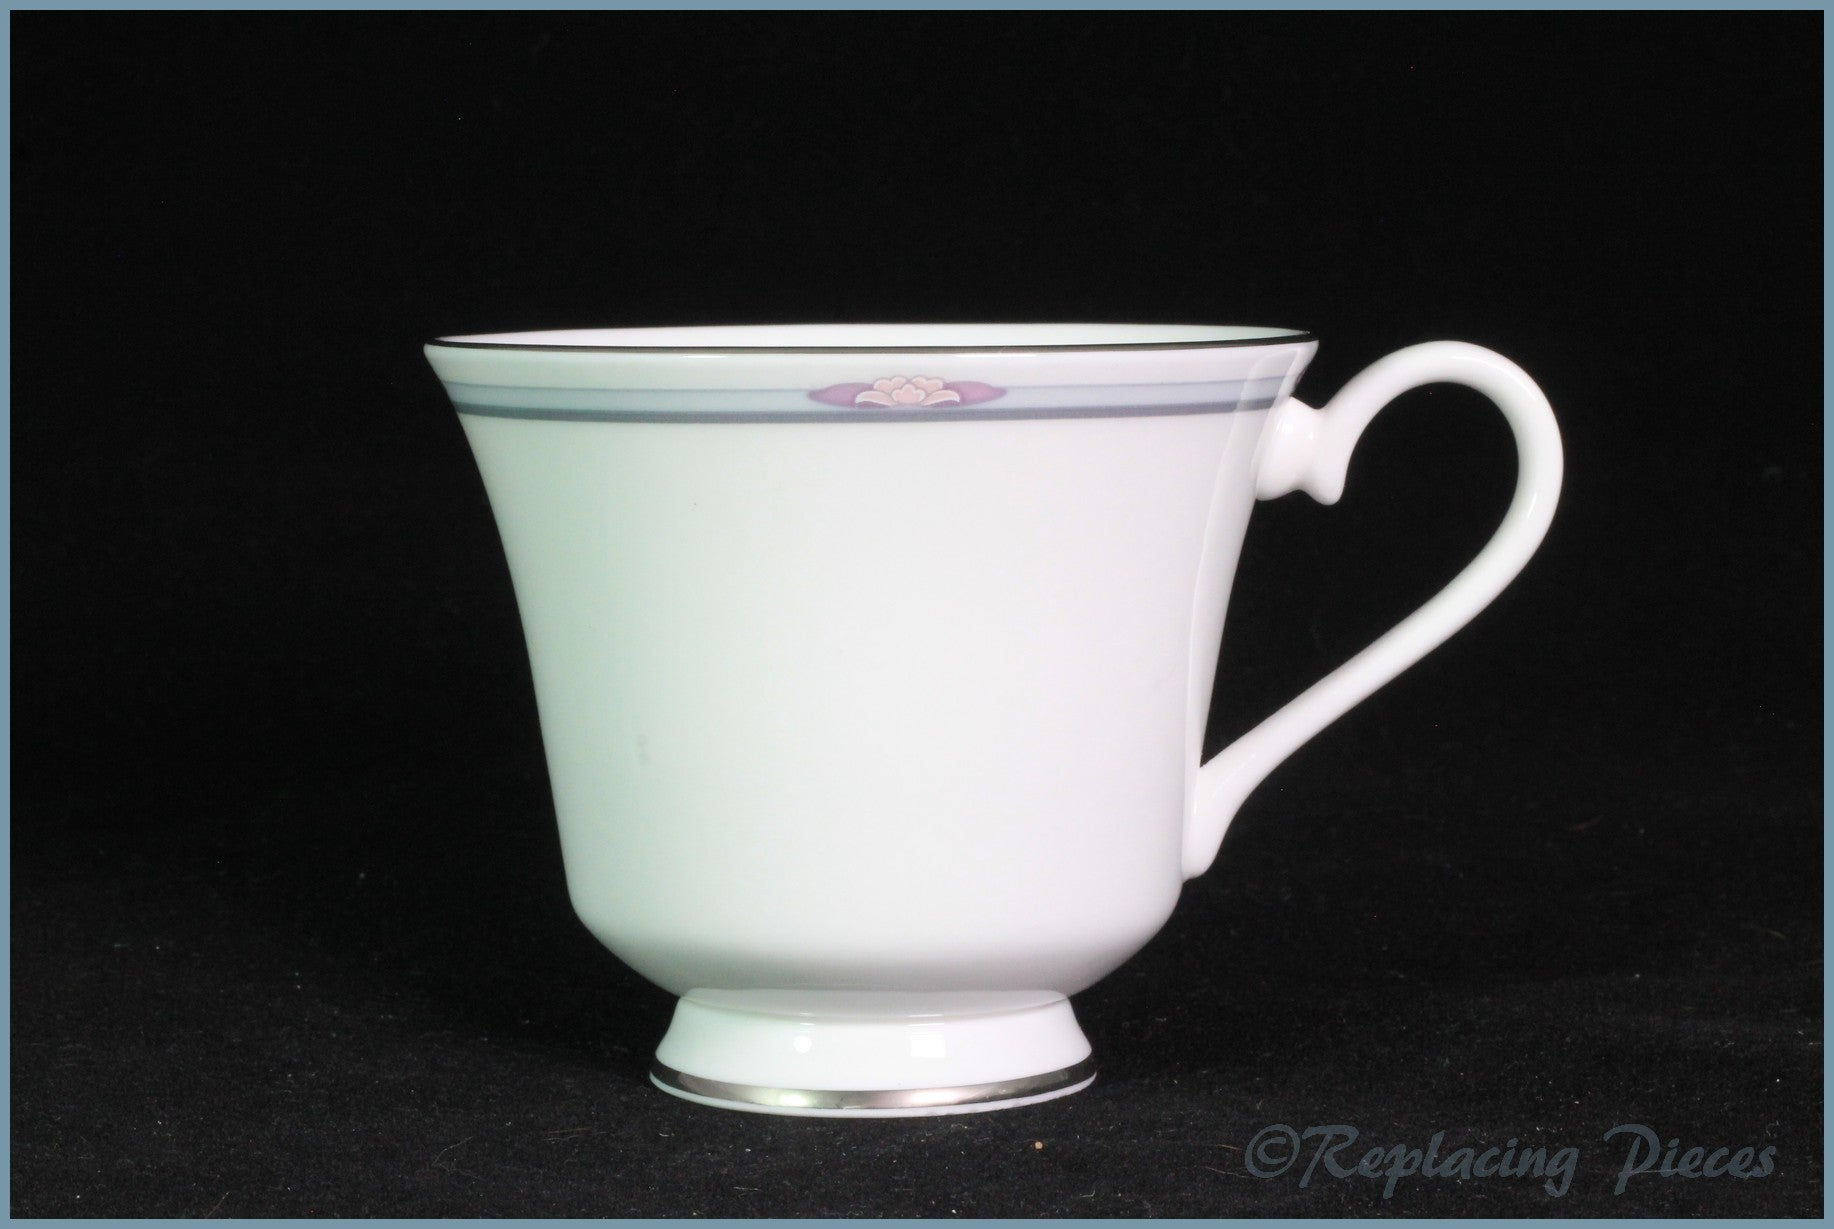 Royal Doulton - Simplicity (H5112) - Teacup (Footed)